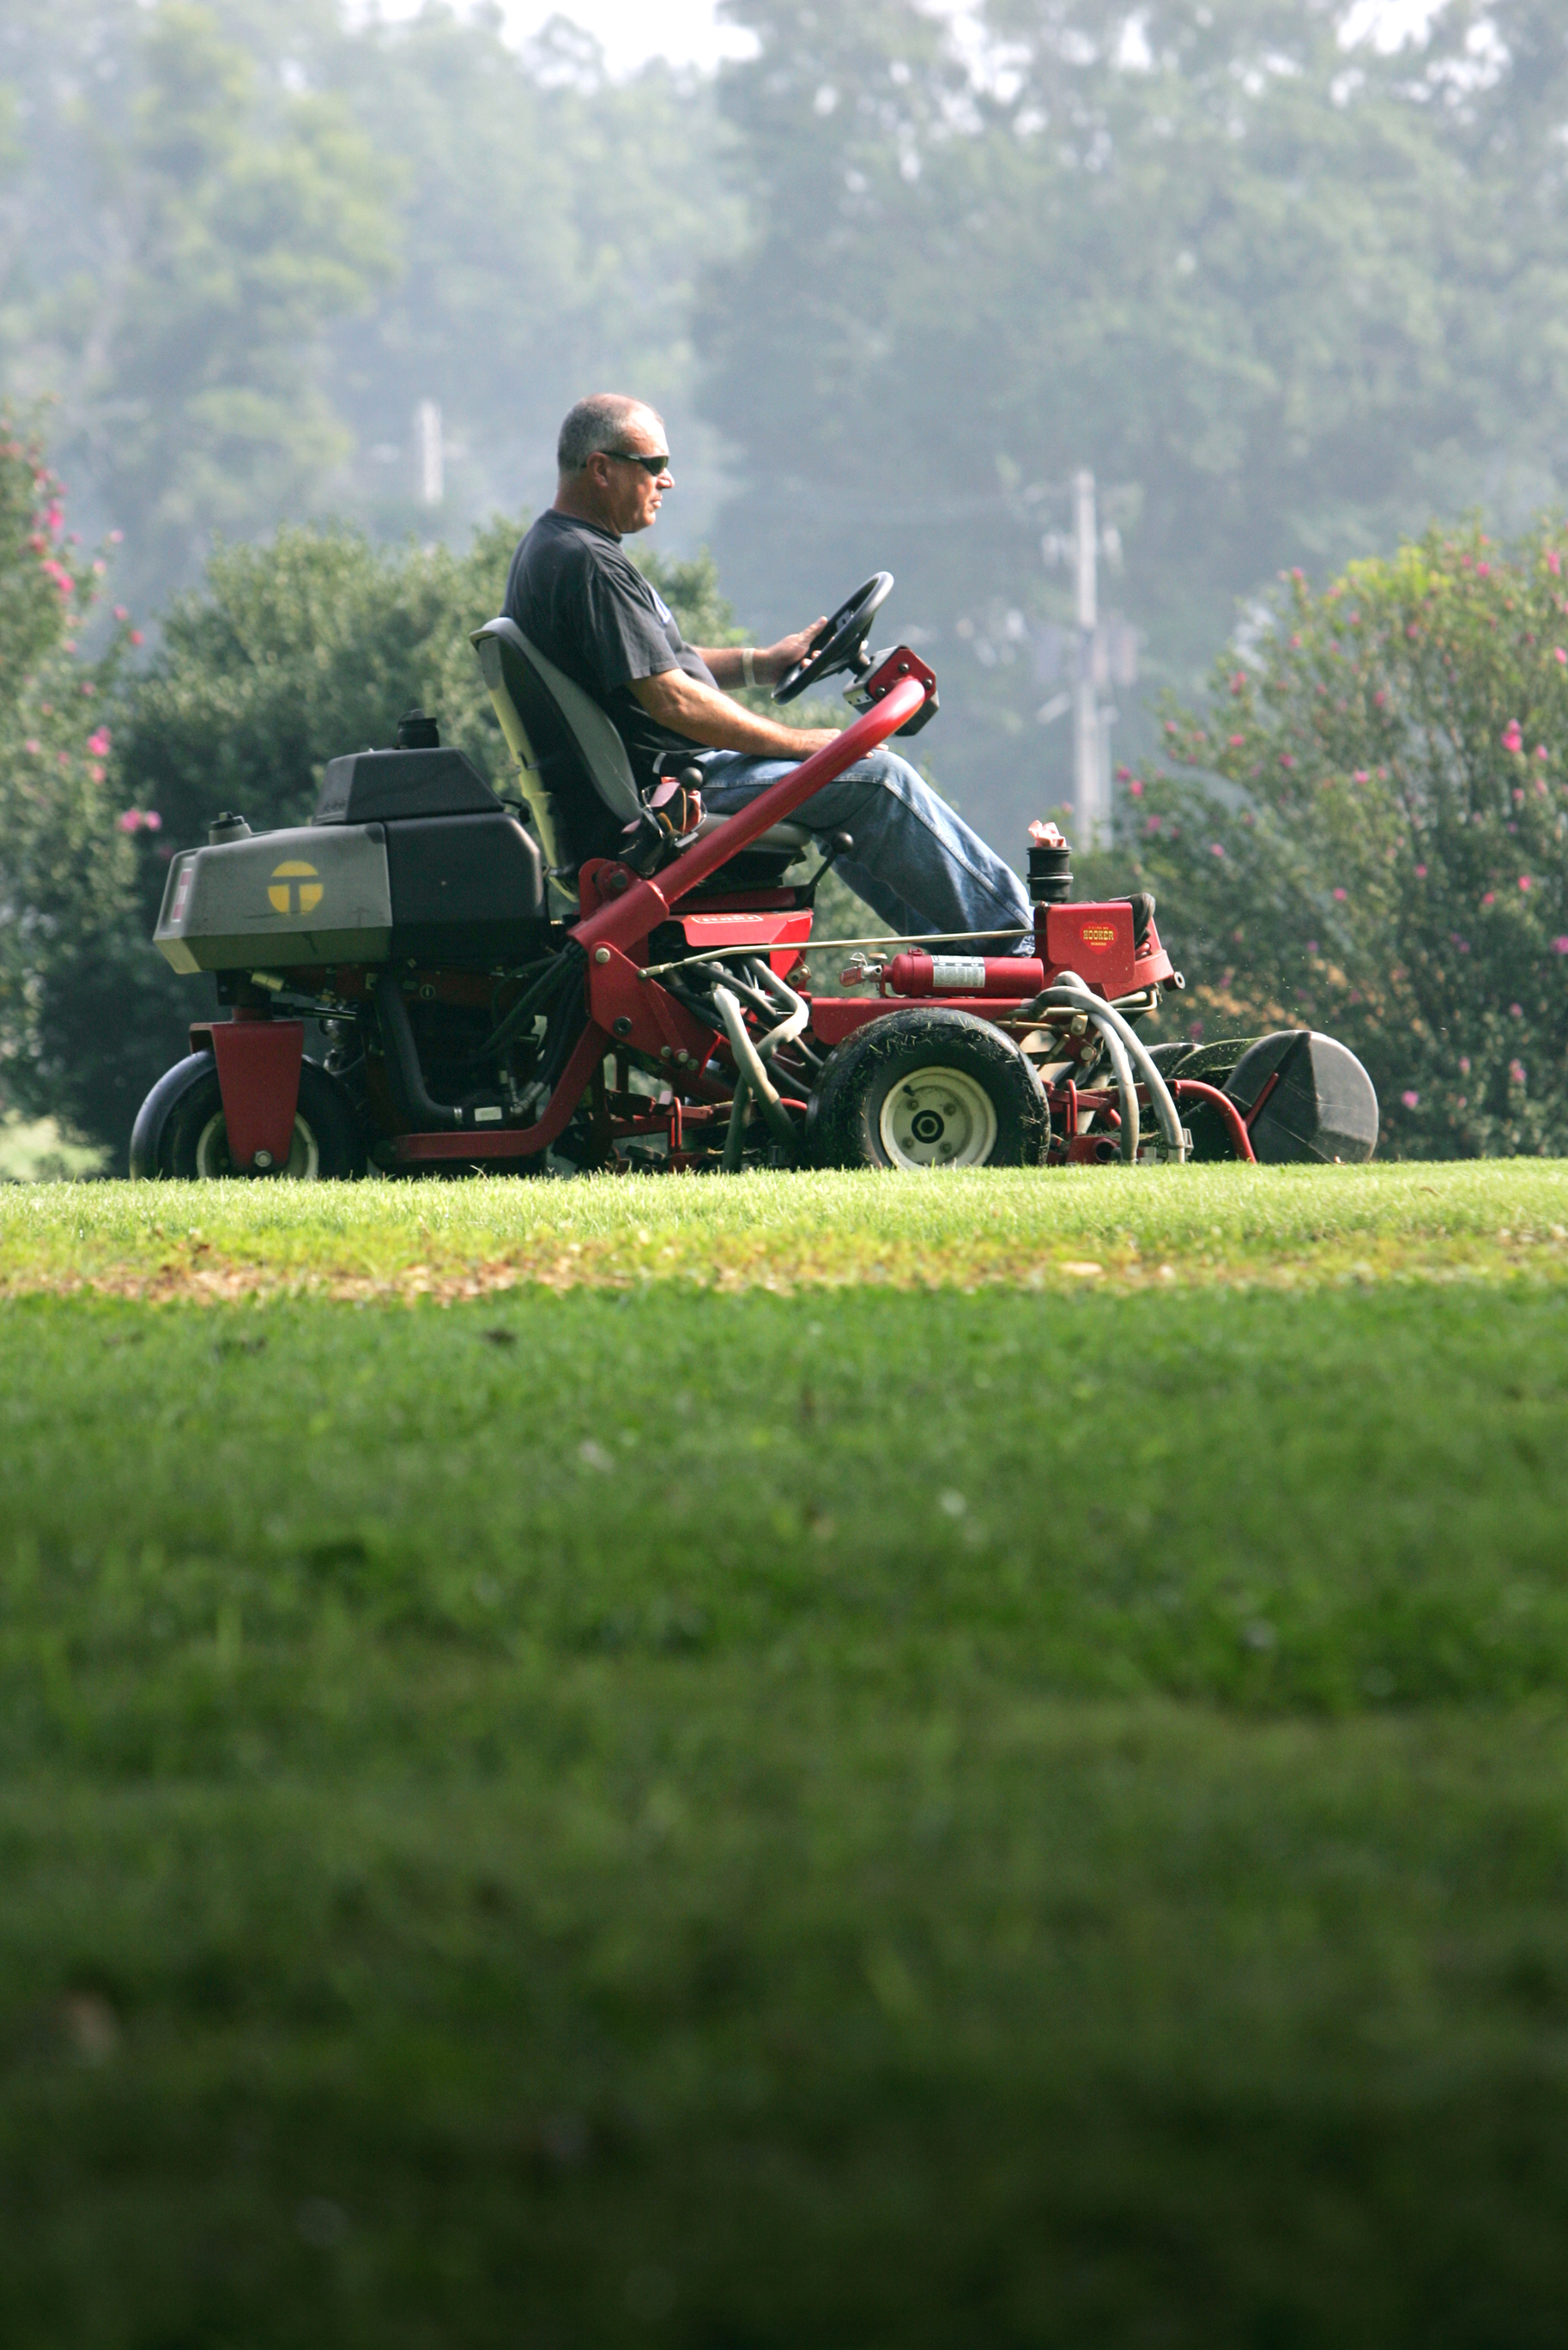 Good-looking summer grass starts with well-maintained equipment. With spring on its way, be sure all nuts, bolts and belts are tight and any blades on your mower and other equipment are sharp.